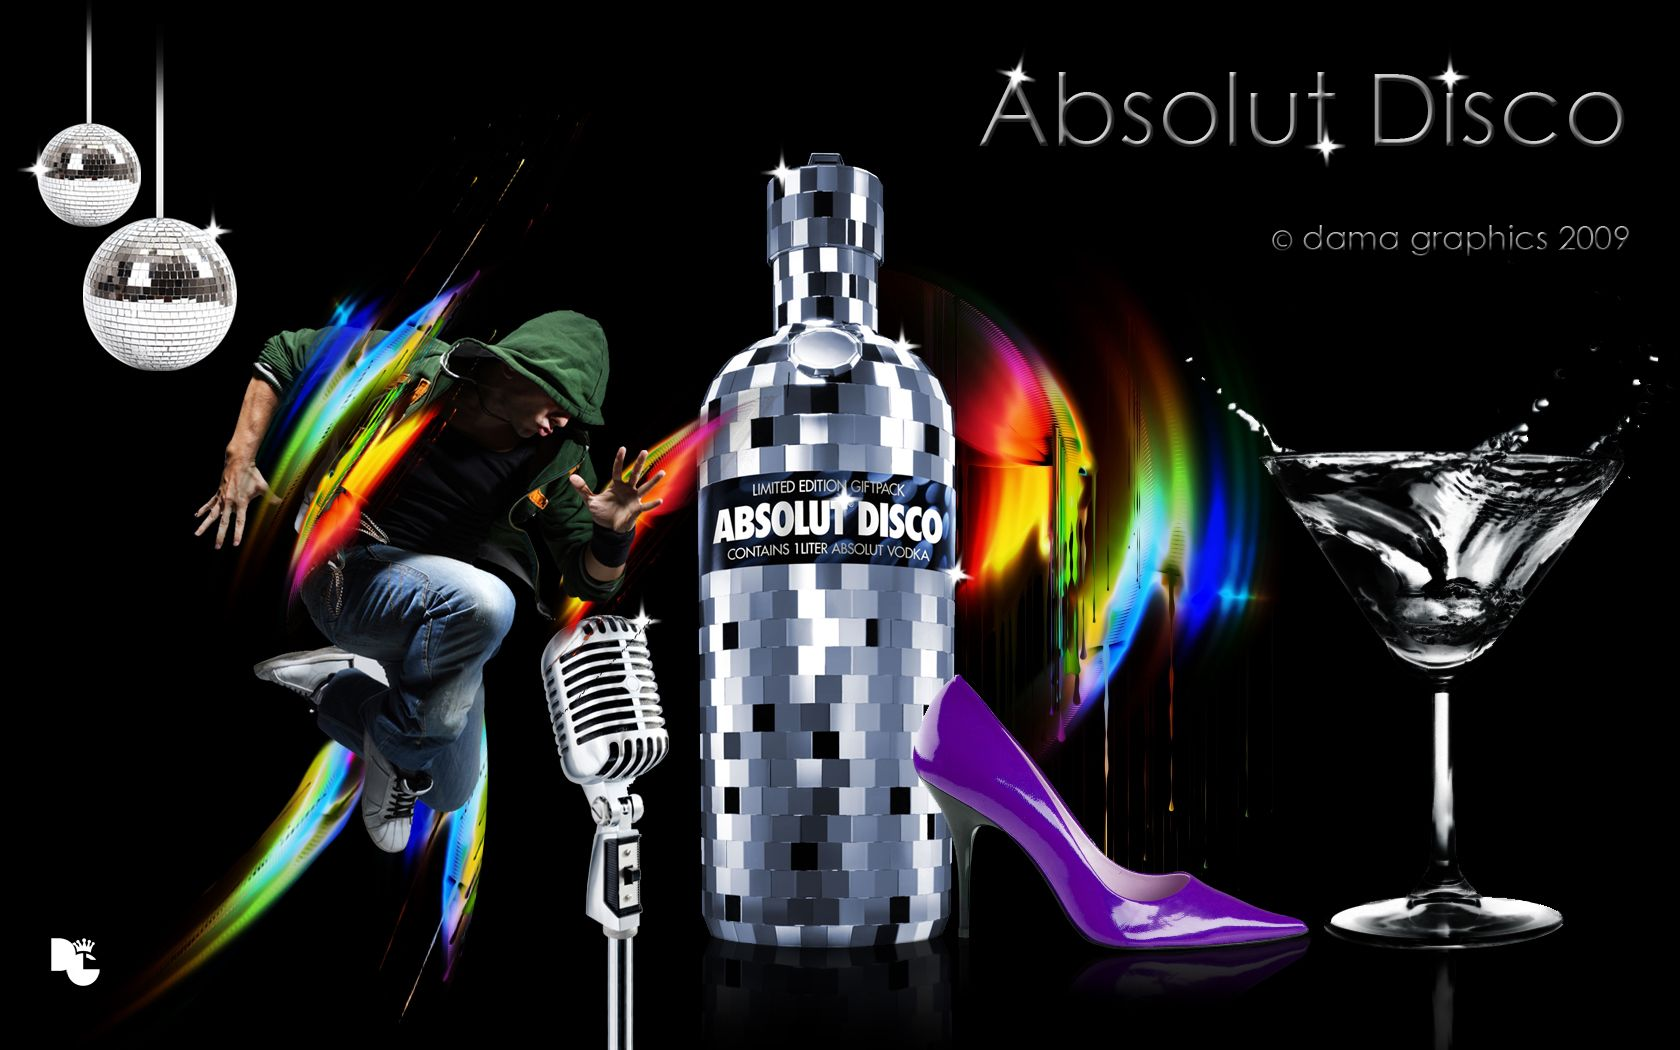 vodka absolut image absolut disco wallpapers